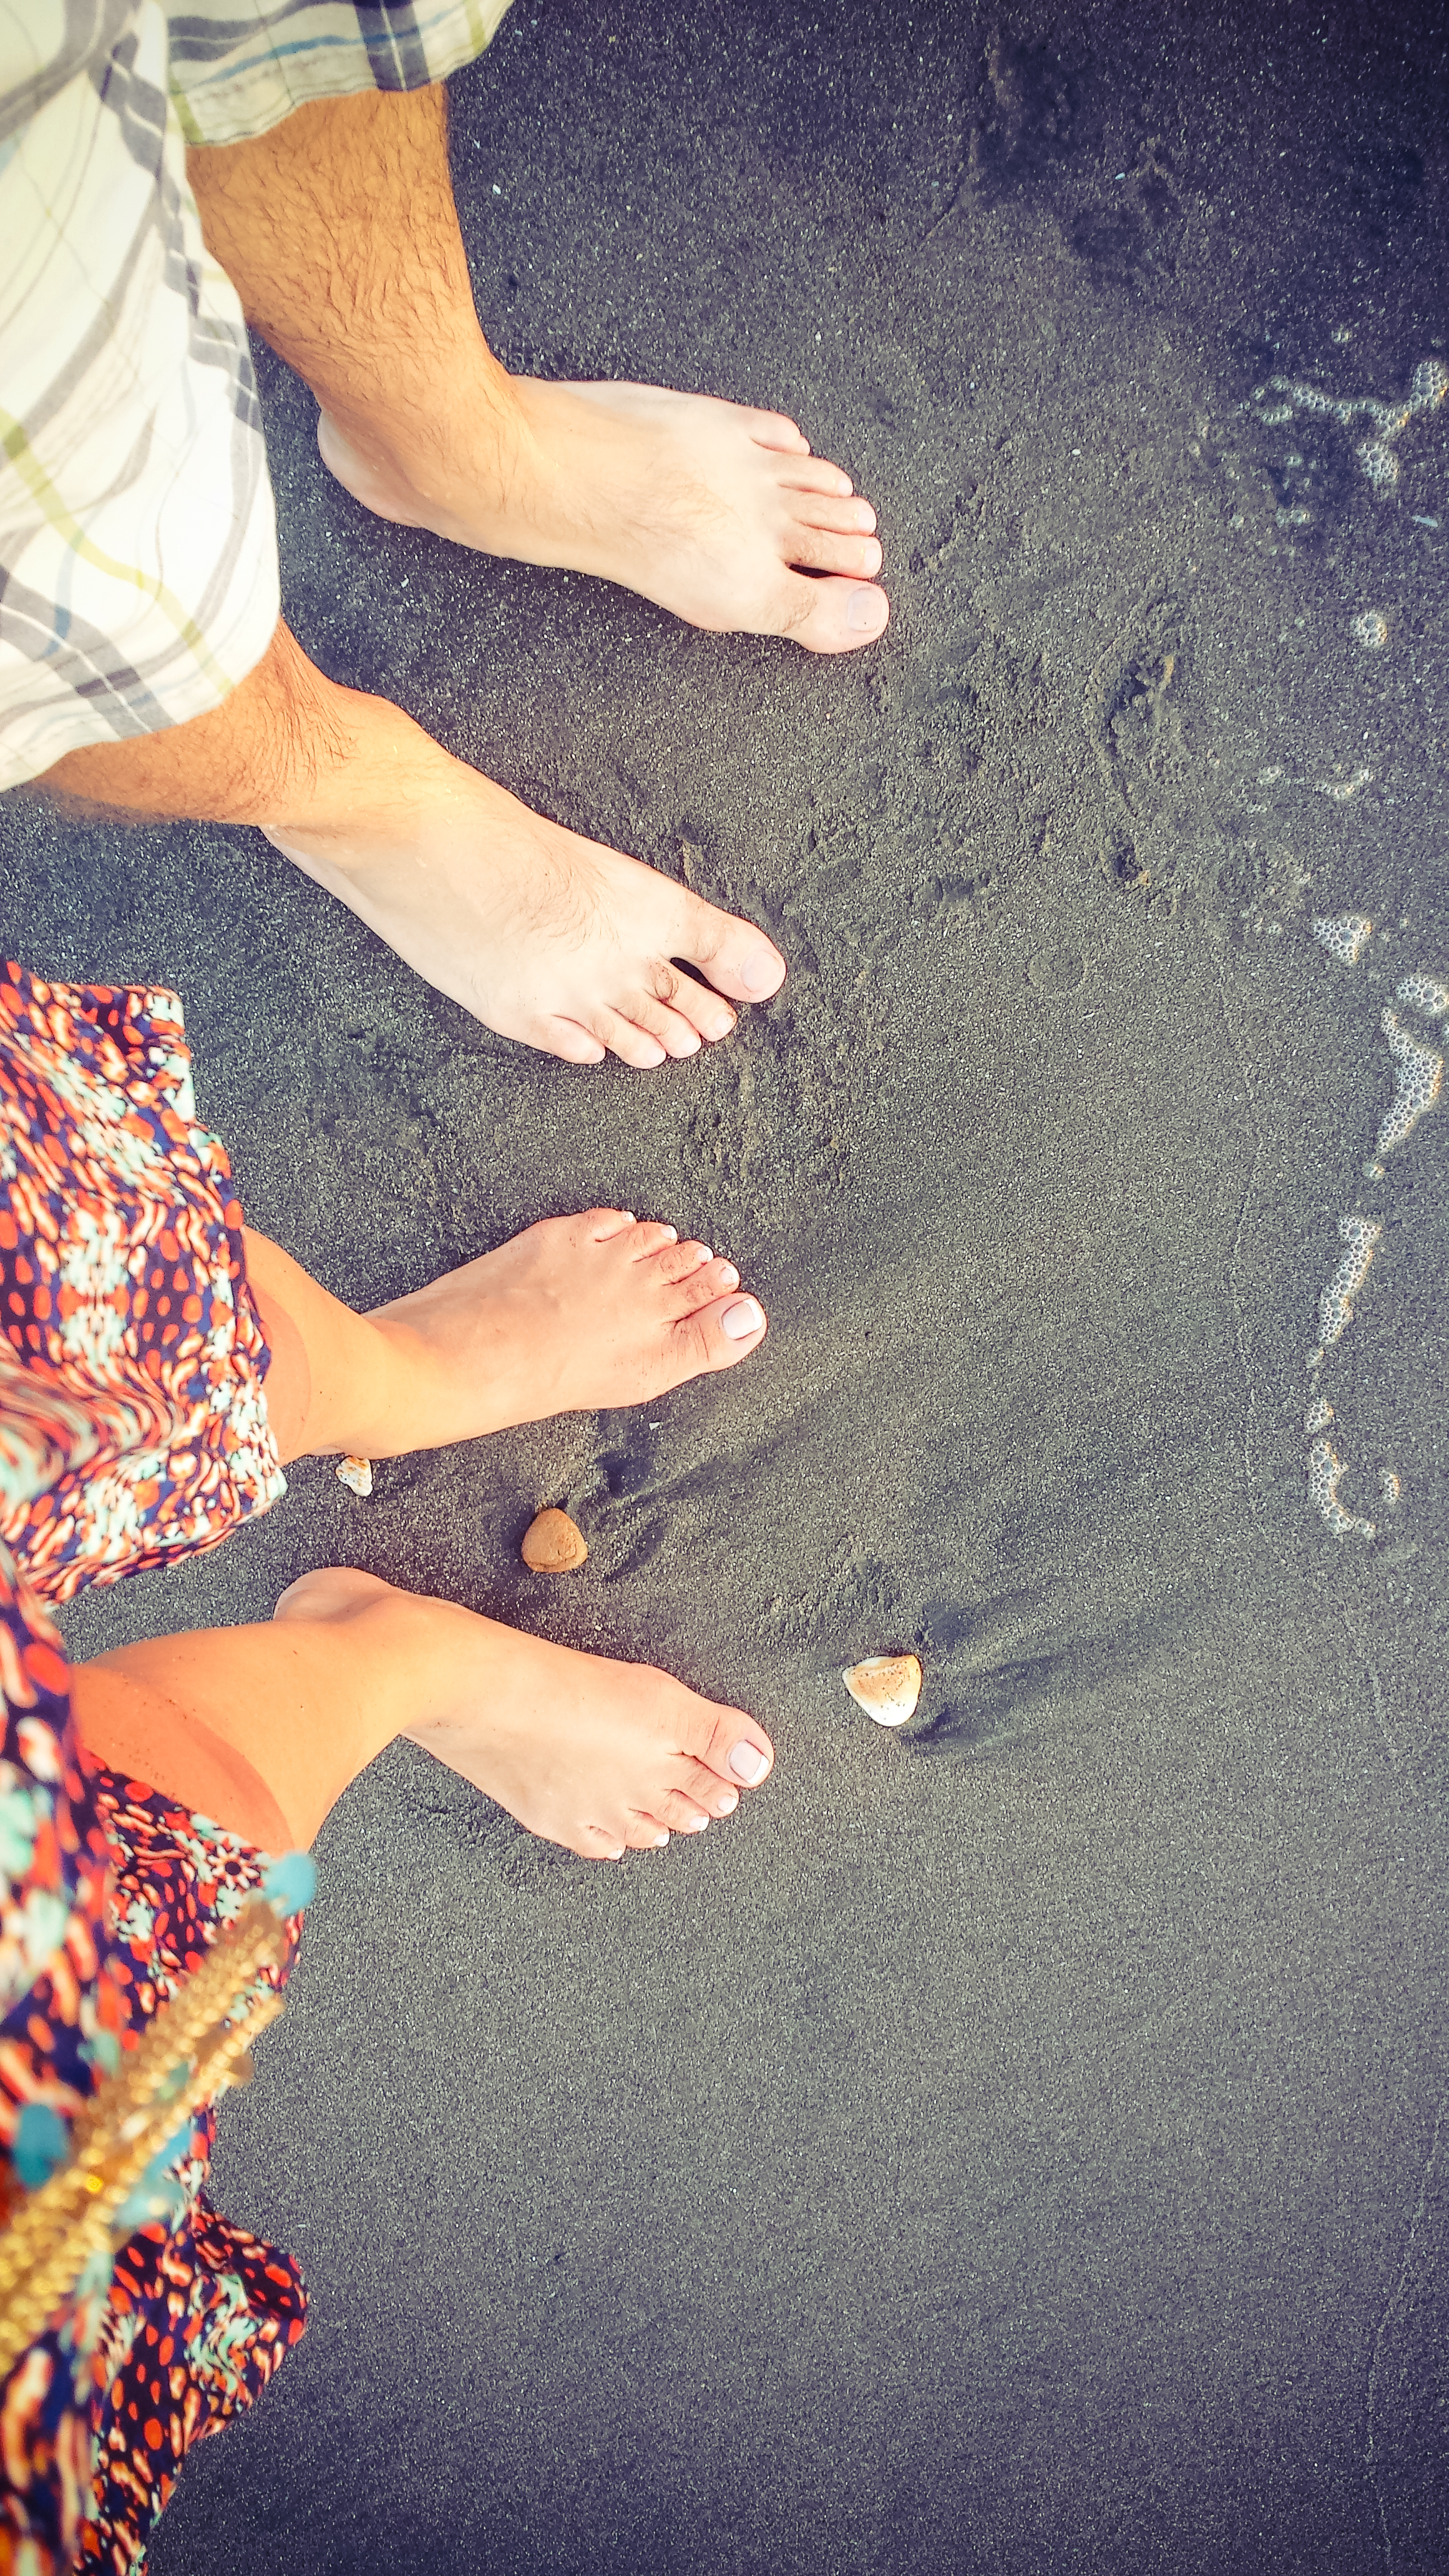 Black Sand at Playa Las Peñitas. Only regret? Wish we cuold have gone in the water. Next time.